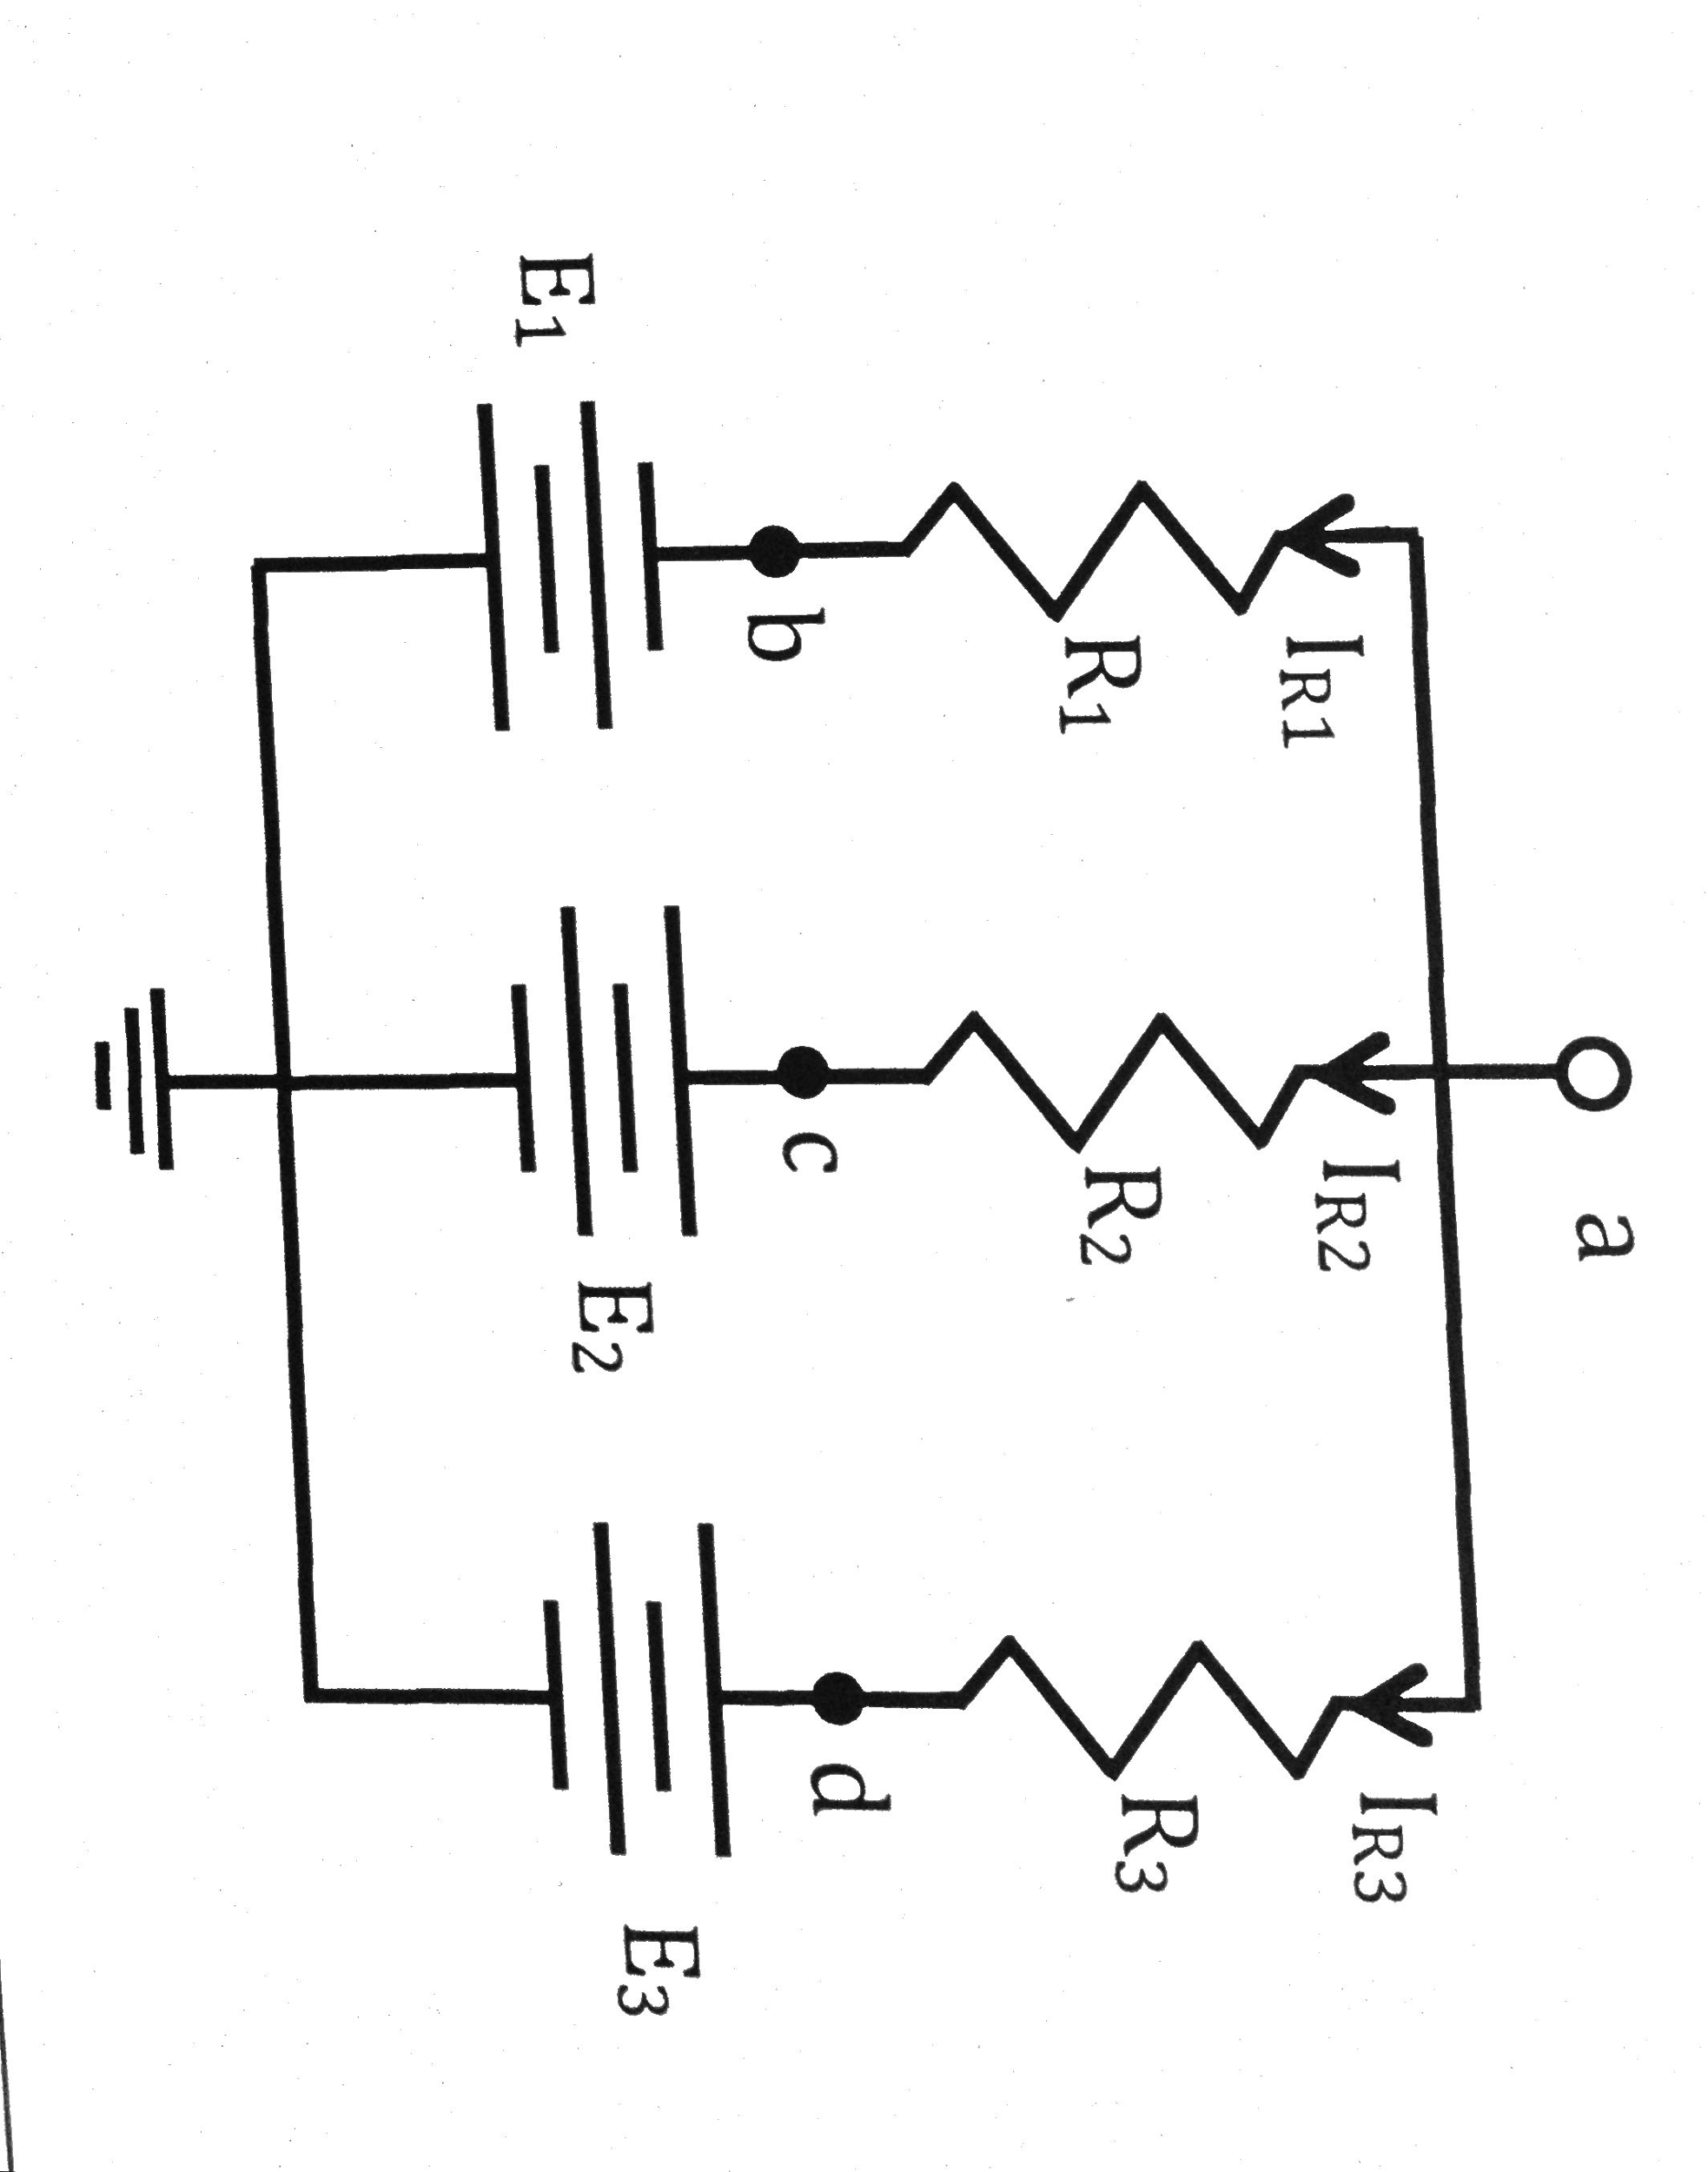 In Figure 4, E2 = E3 = 10V, R2 = R3 = 5 Ohms, and